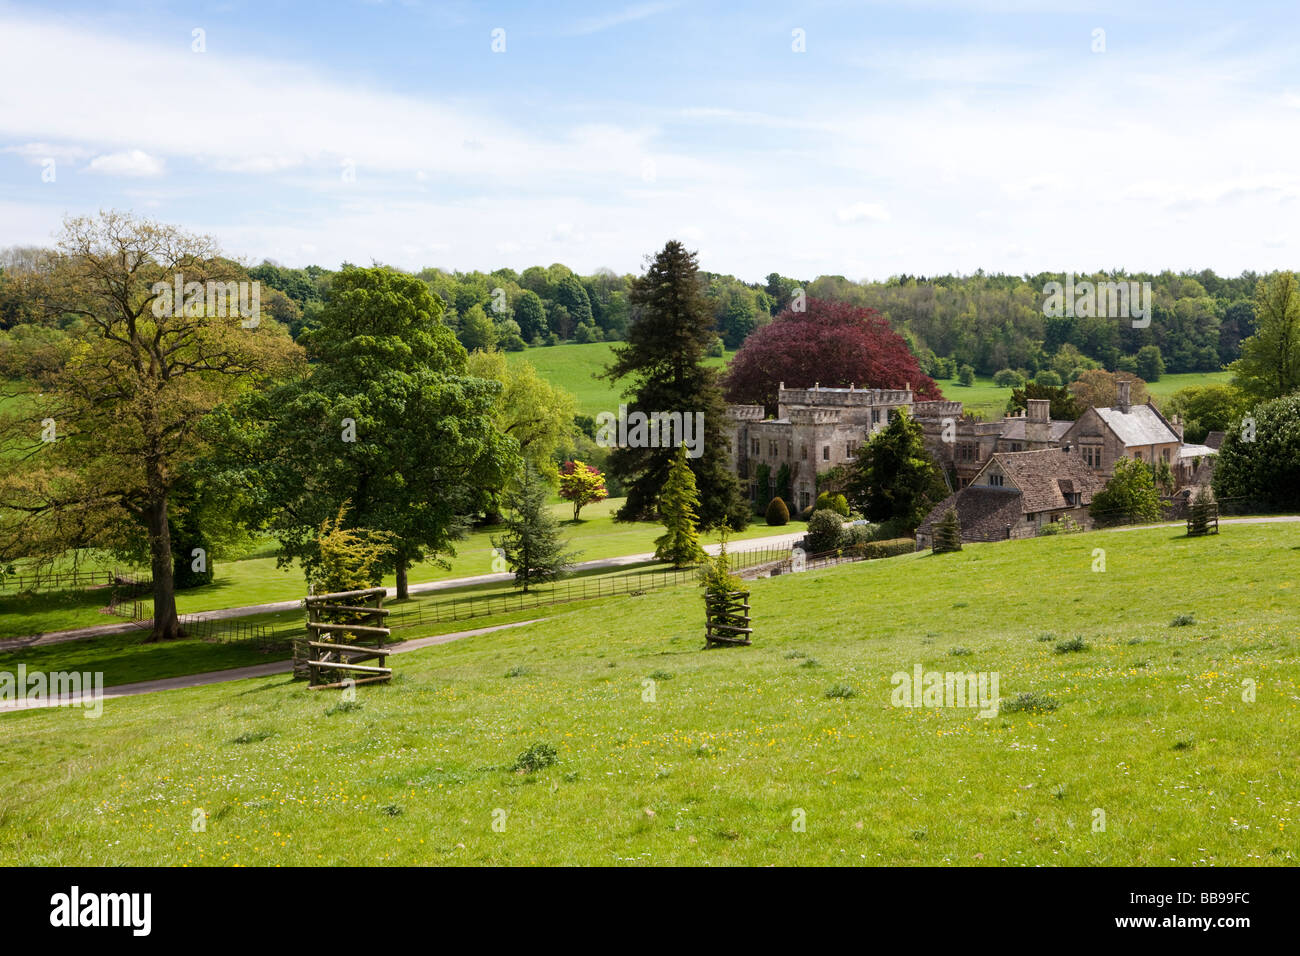 Lasborough Park, built in 1794 by James Wyatt for Edmund Estcourt, in the Cotswold Lasborough valley, Gloucestershire - Stock Image